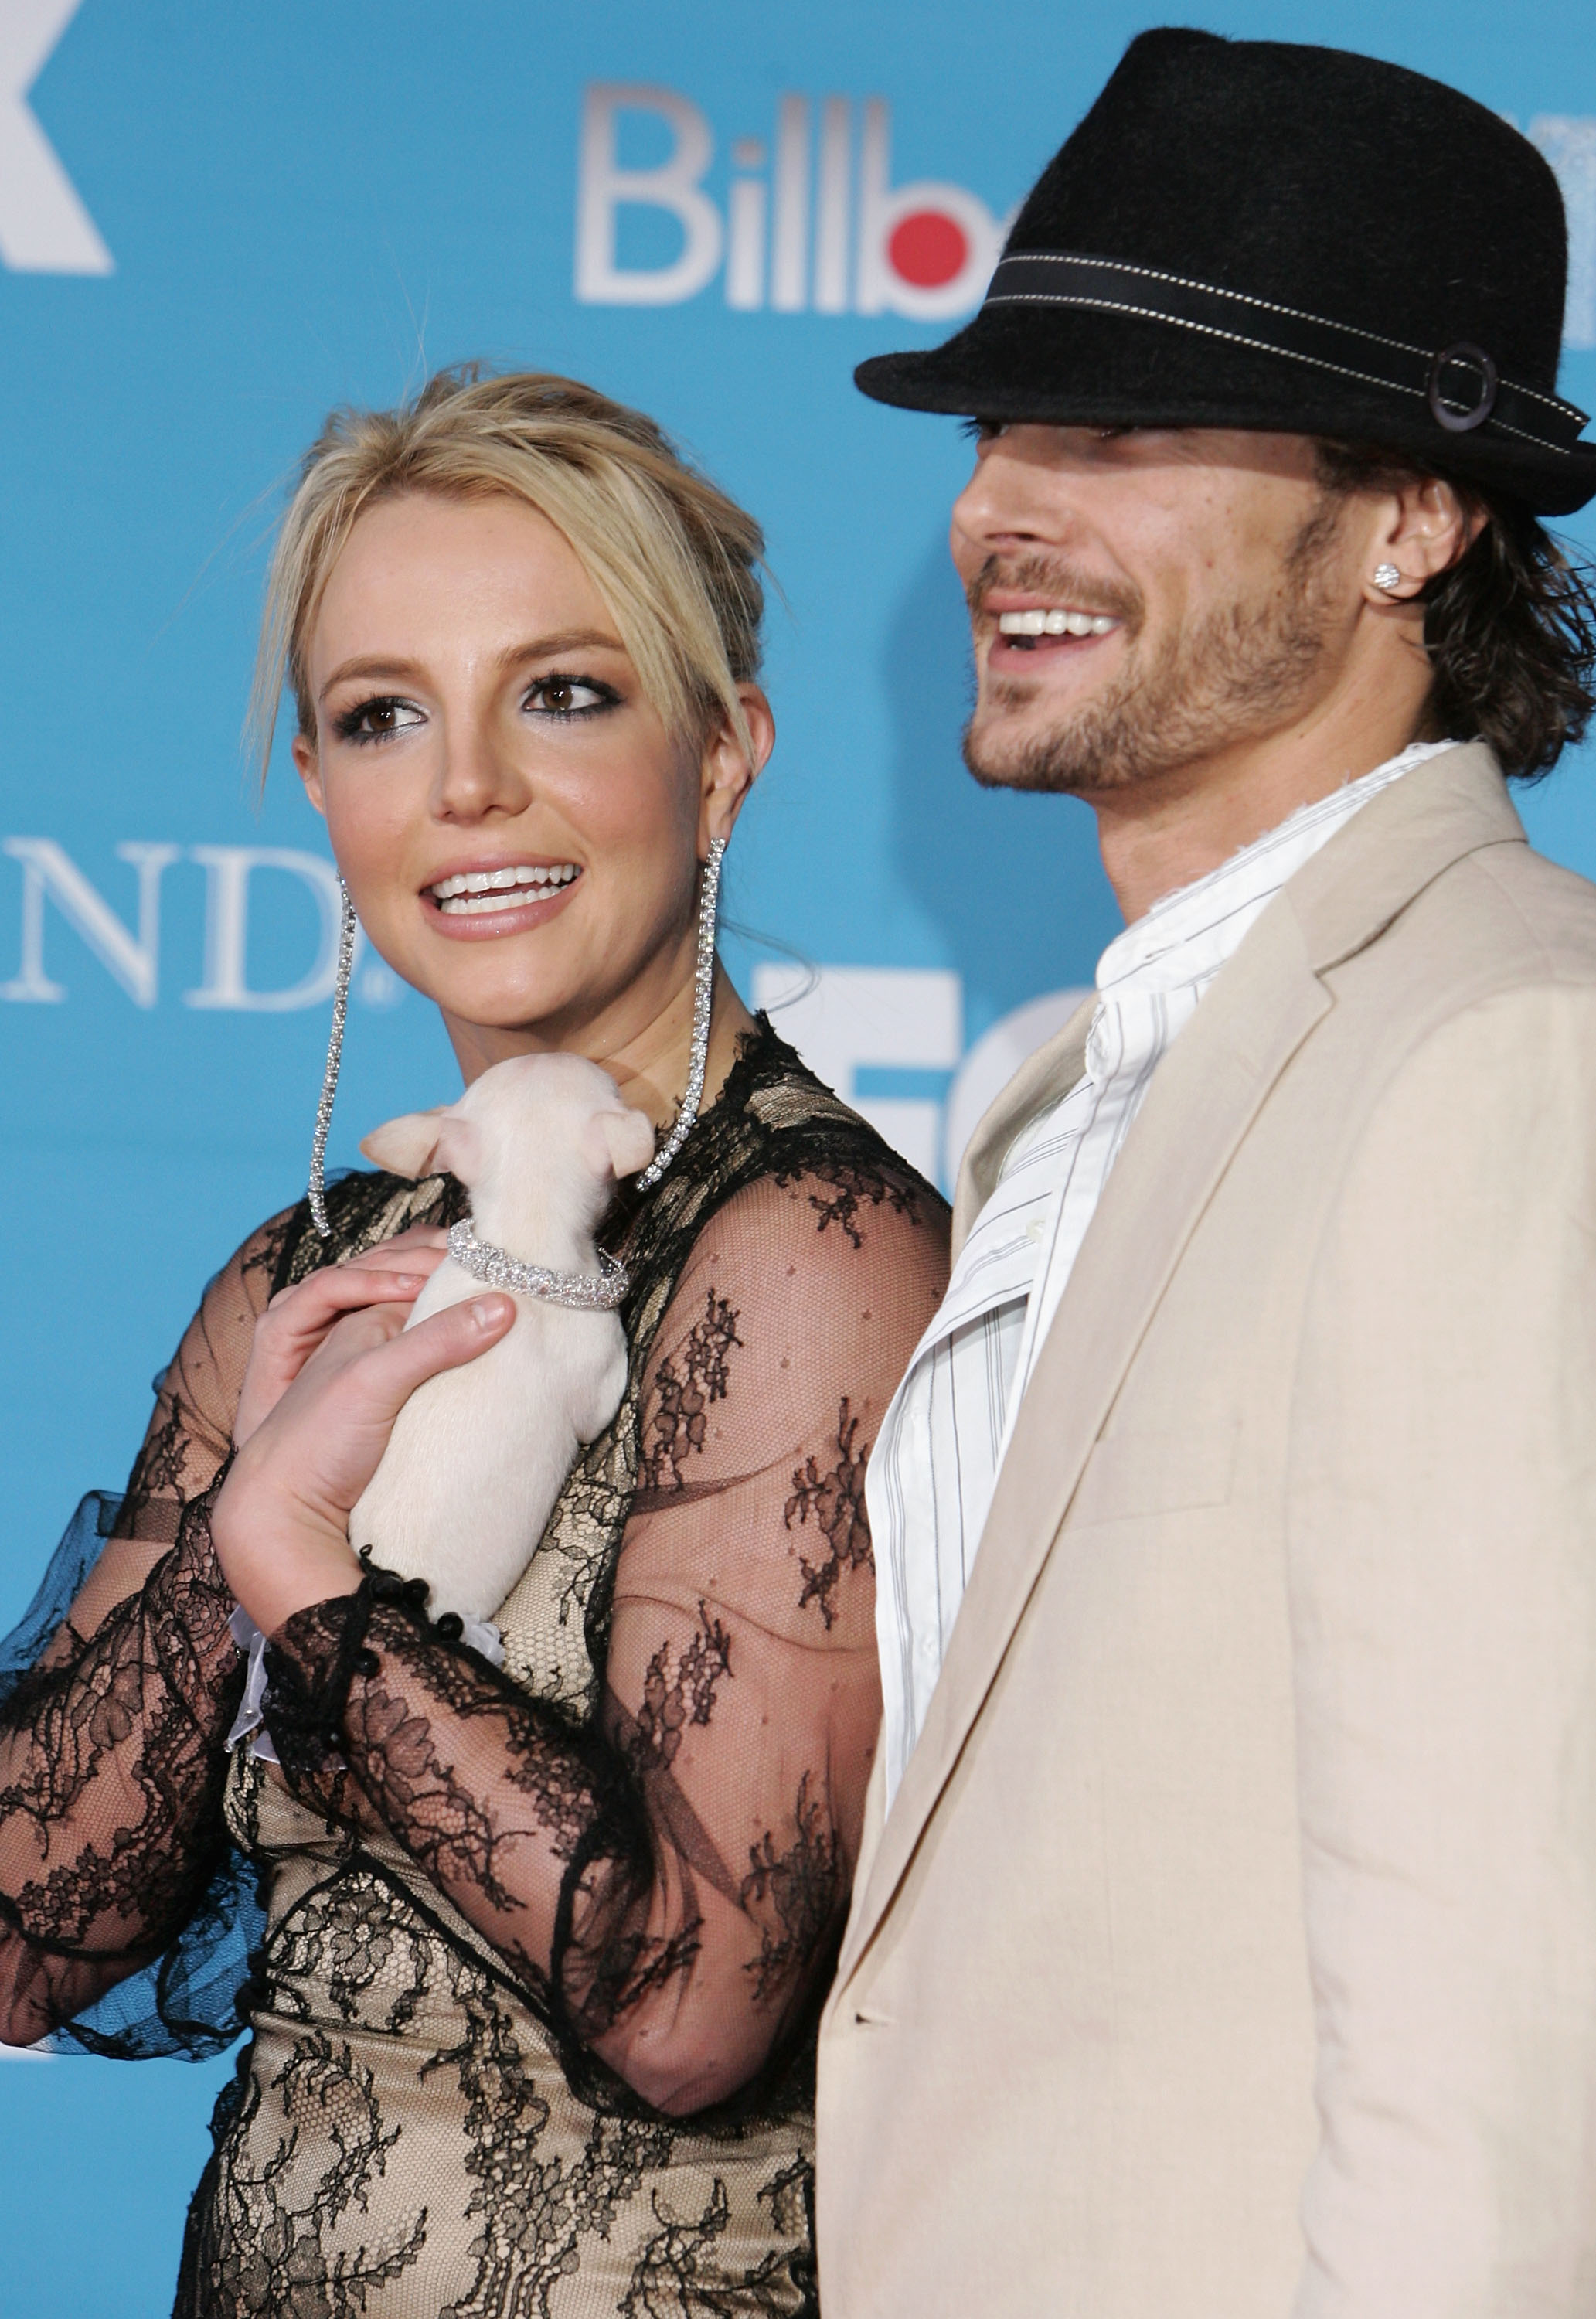 Singer Britney Spears and husband Kevin Federline arrive at the 2004 Billboard Music Awards on December 8, 2004 at the MGM Grand Garden Arena, in Las Vegas, Nevada.